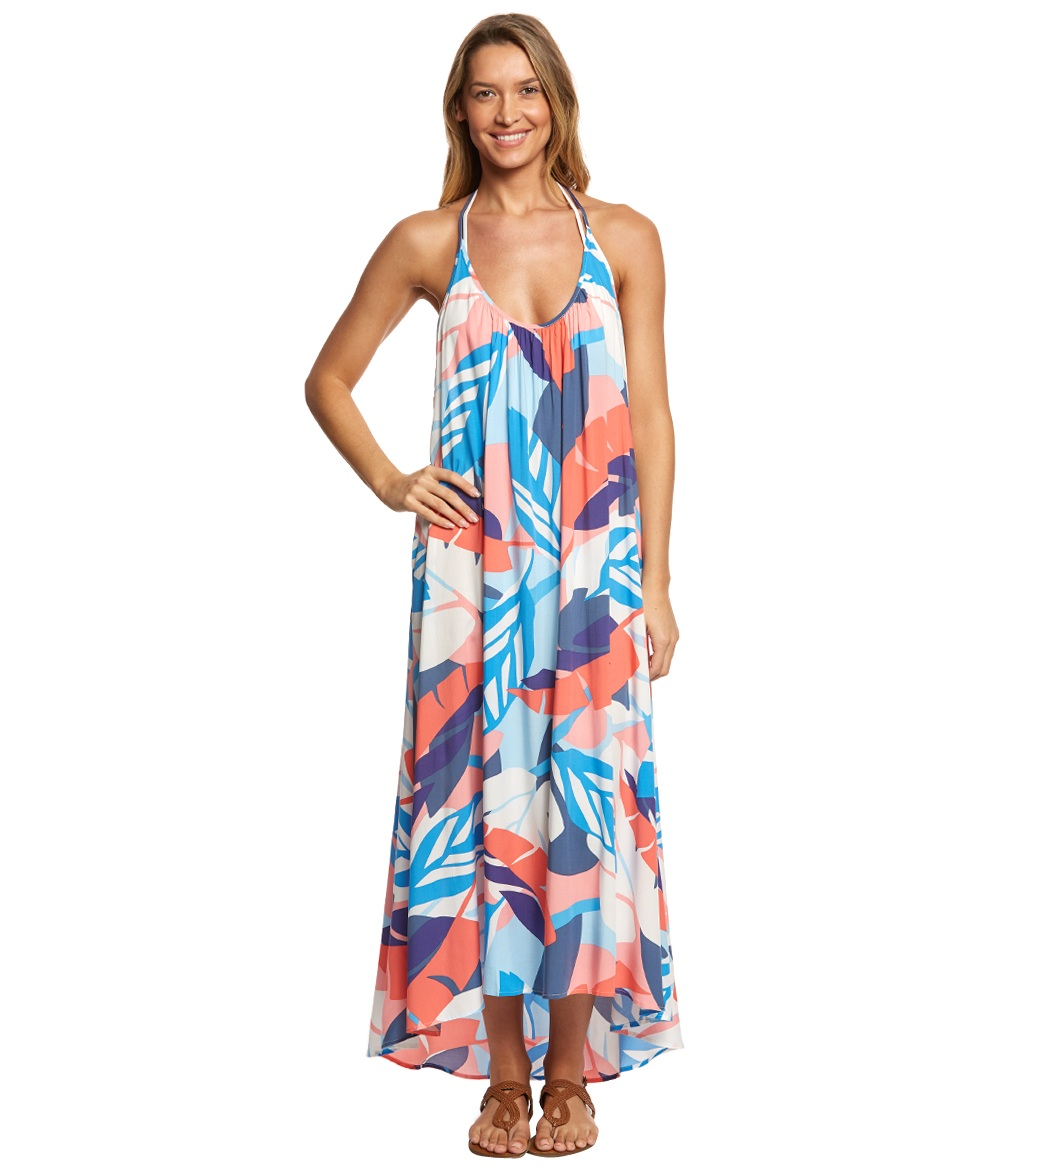 Vince Camuto Rainforest Maxi Dress Cover Up at SwimOutlet.com - Free ...